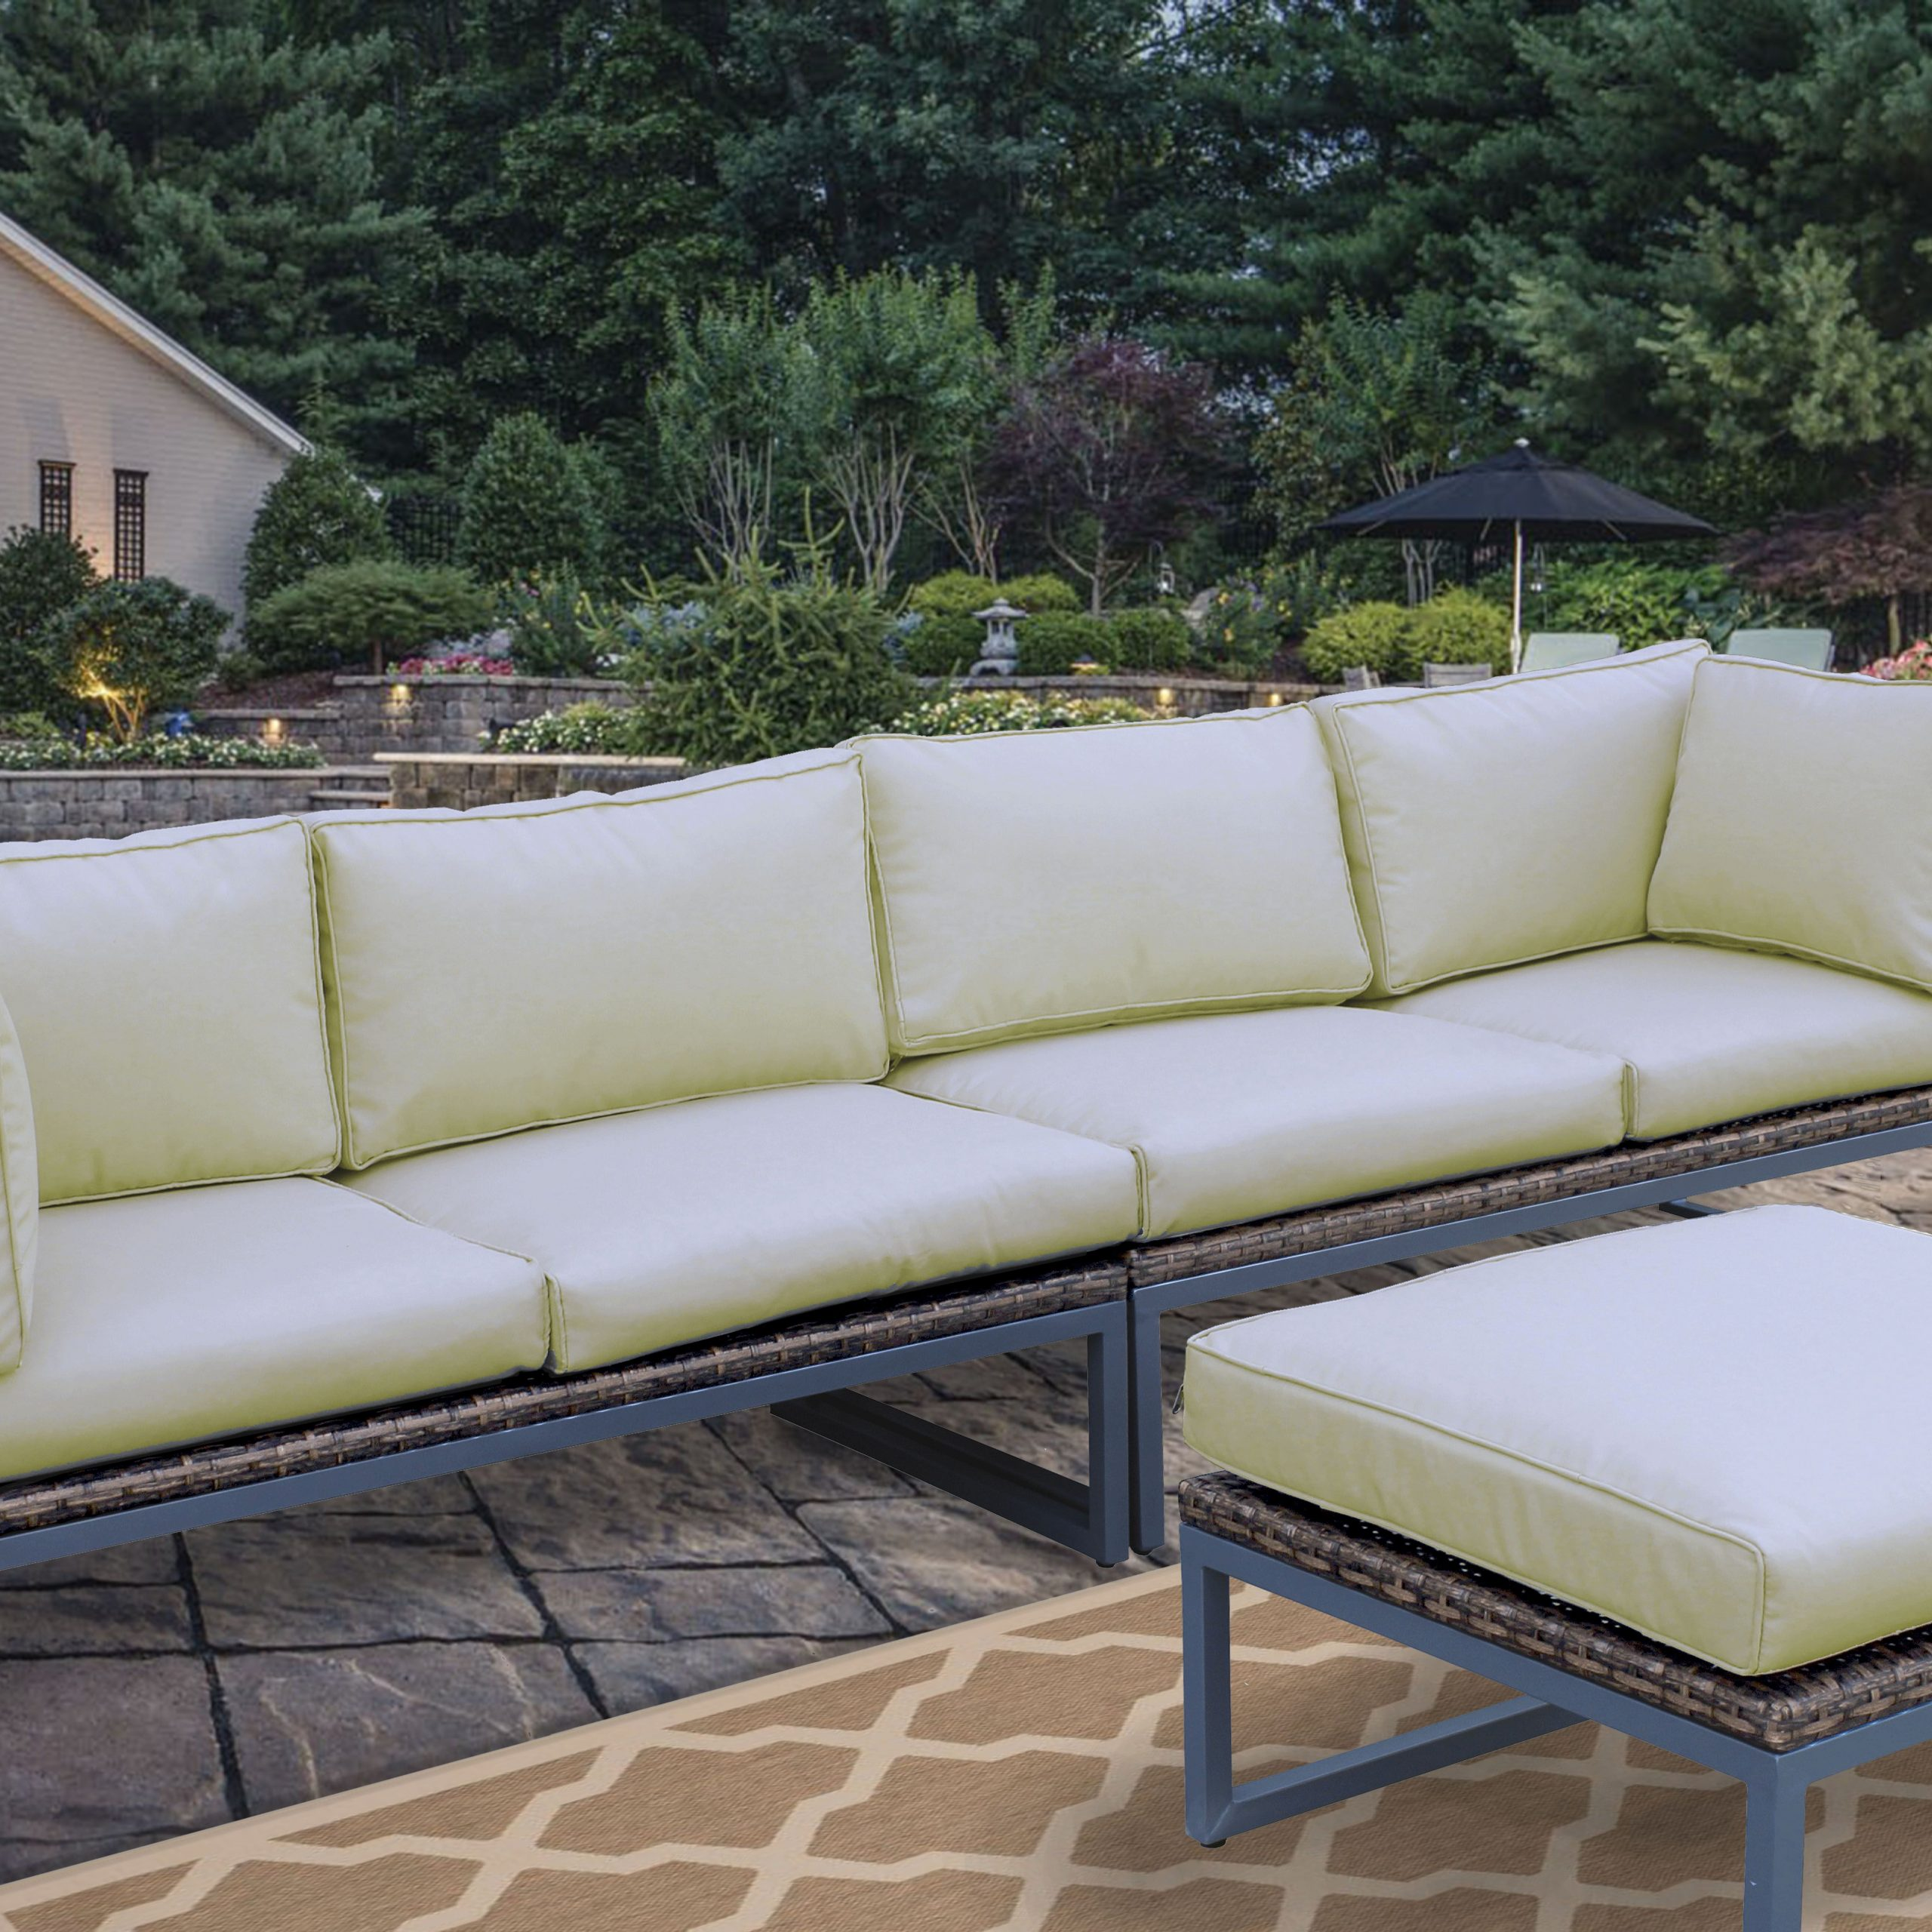 Sora Multi Layout 3 Piece Patio Sofa Set Can Be Arranged In Within Most Popular Jimmie 3 Piece Sectionals Seating Group With Cushions (View 20 of 25)